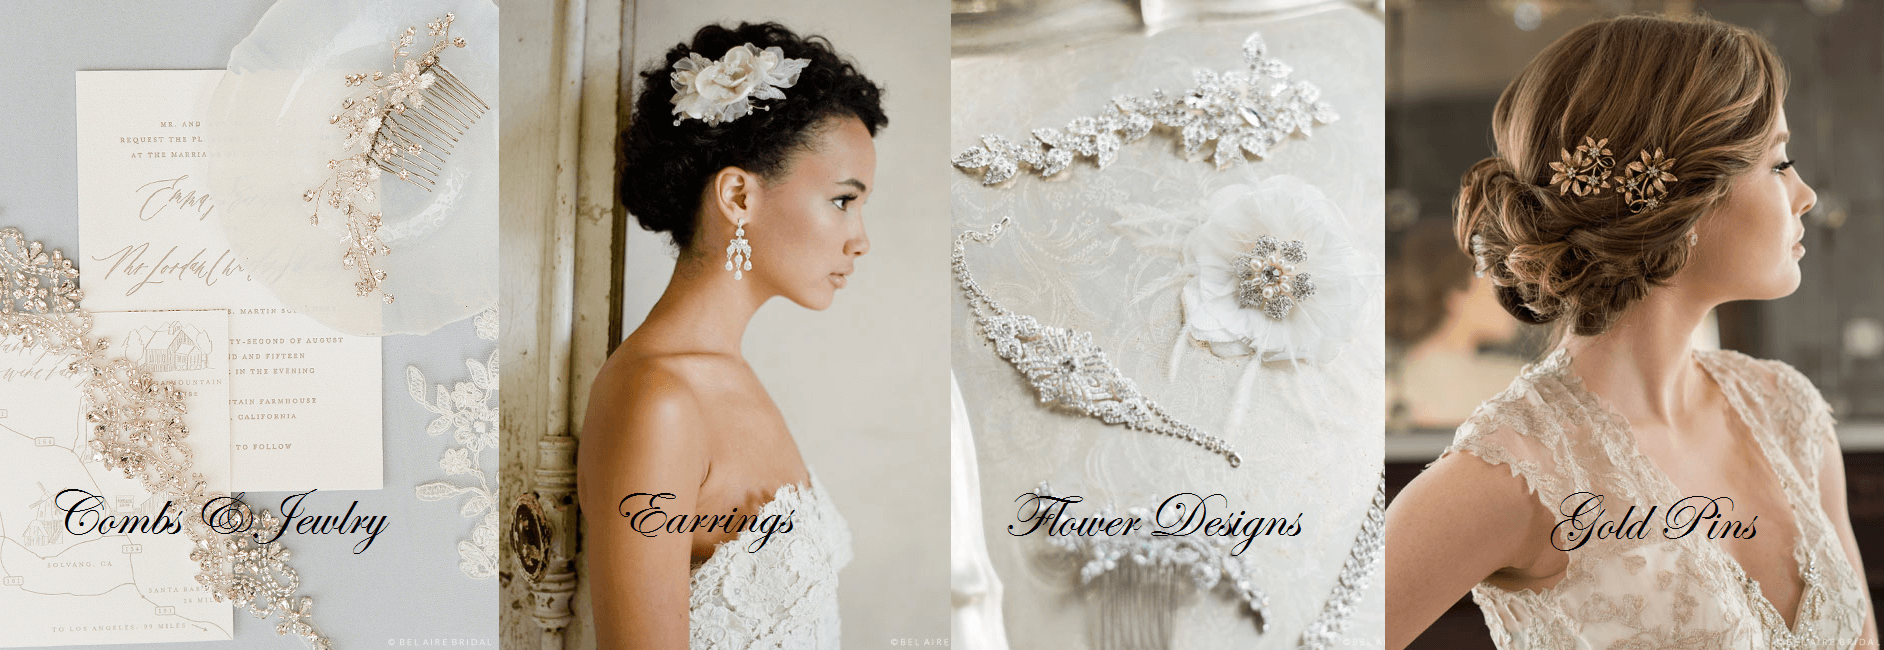 Wedding Hair Accessories, Bel Aire Halos, Bel Aiire combs